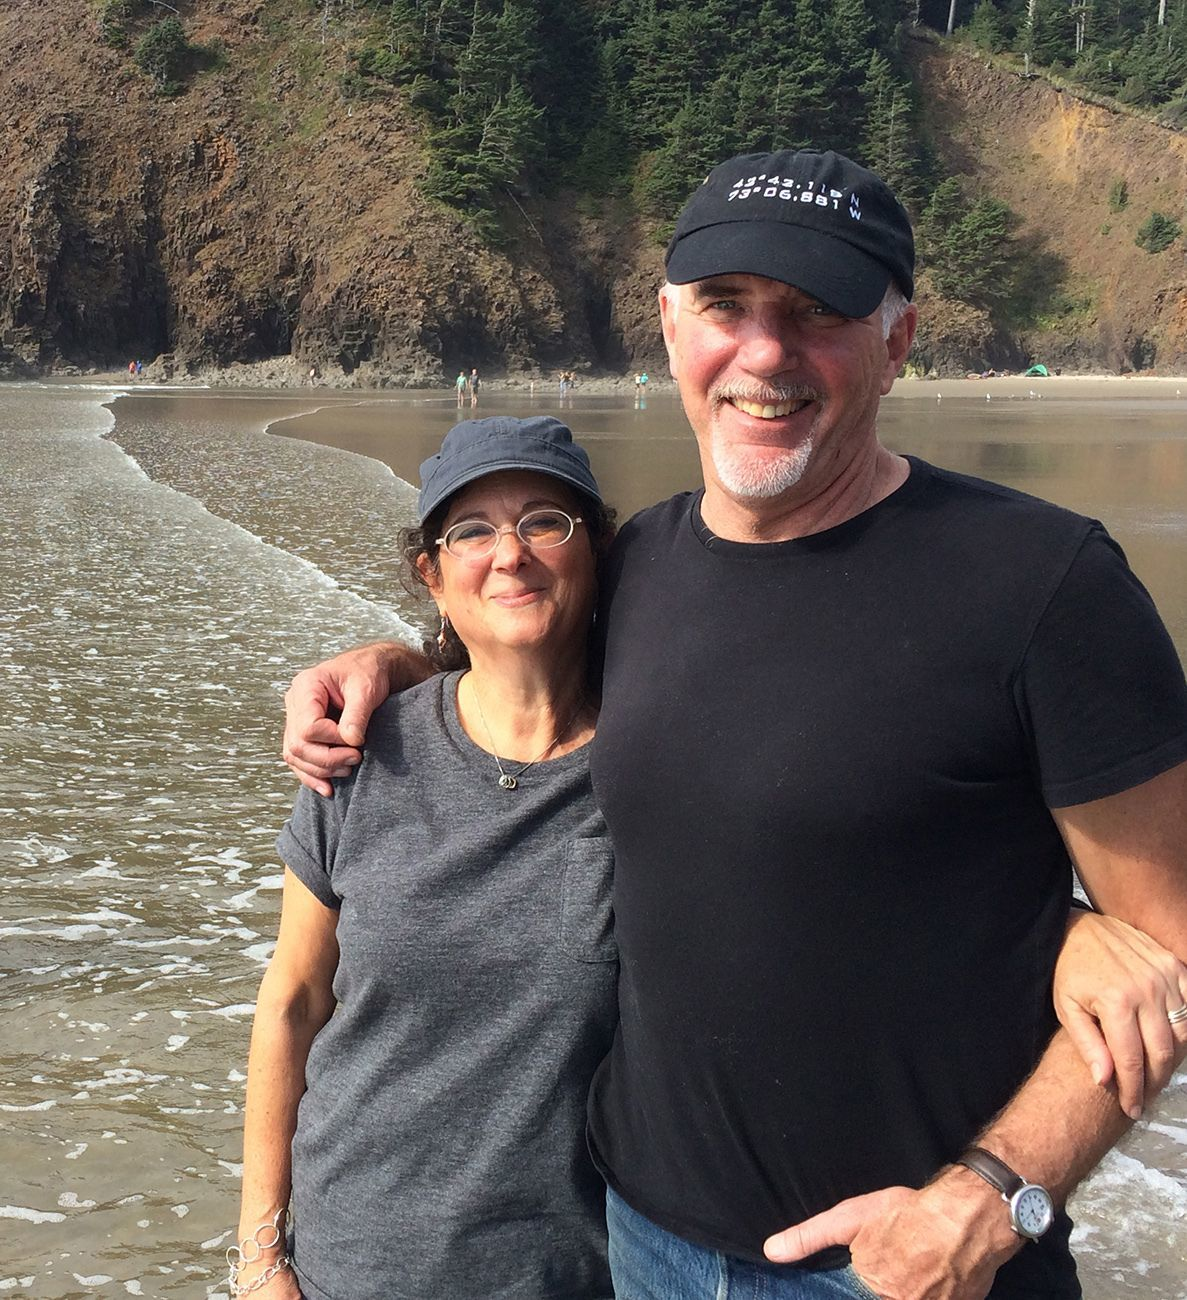 Phil Smart & wife Claudia at the beach